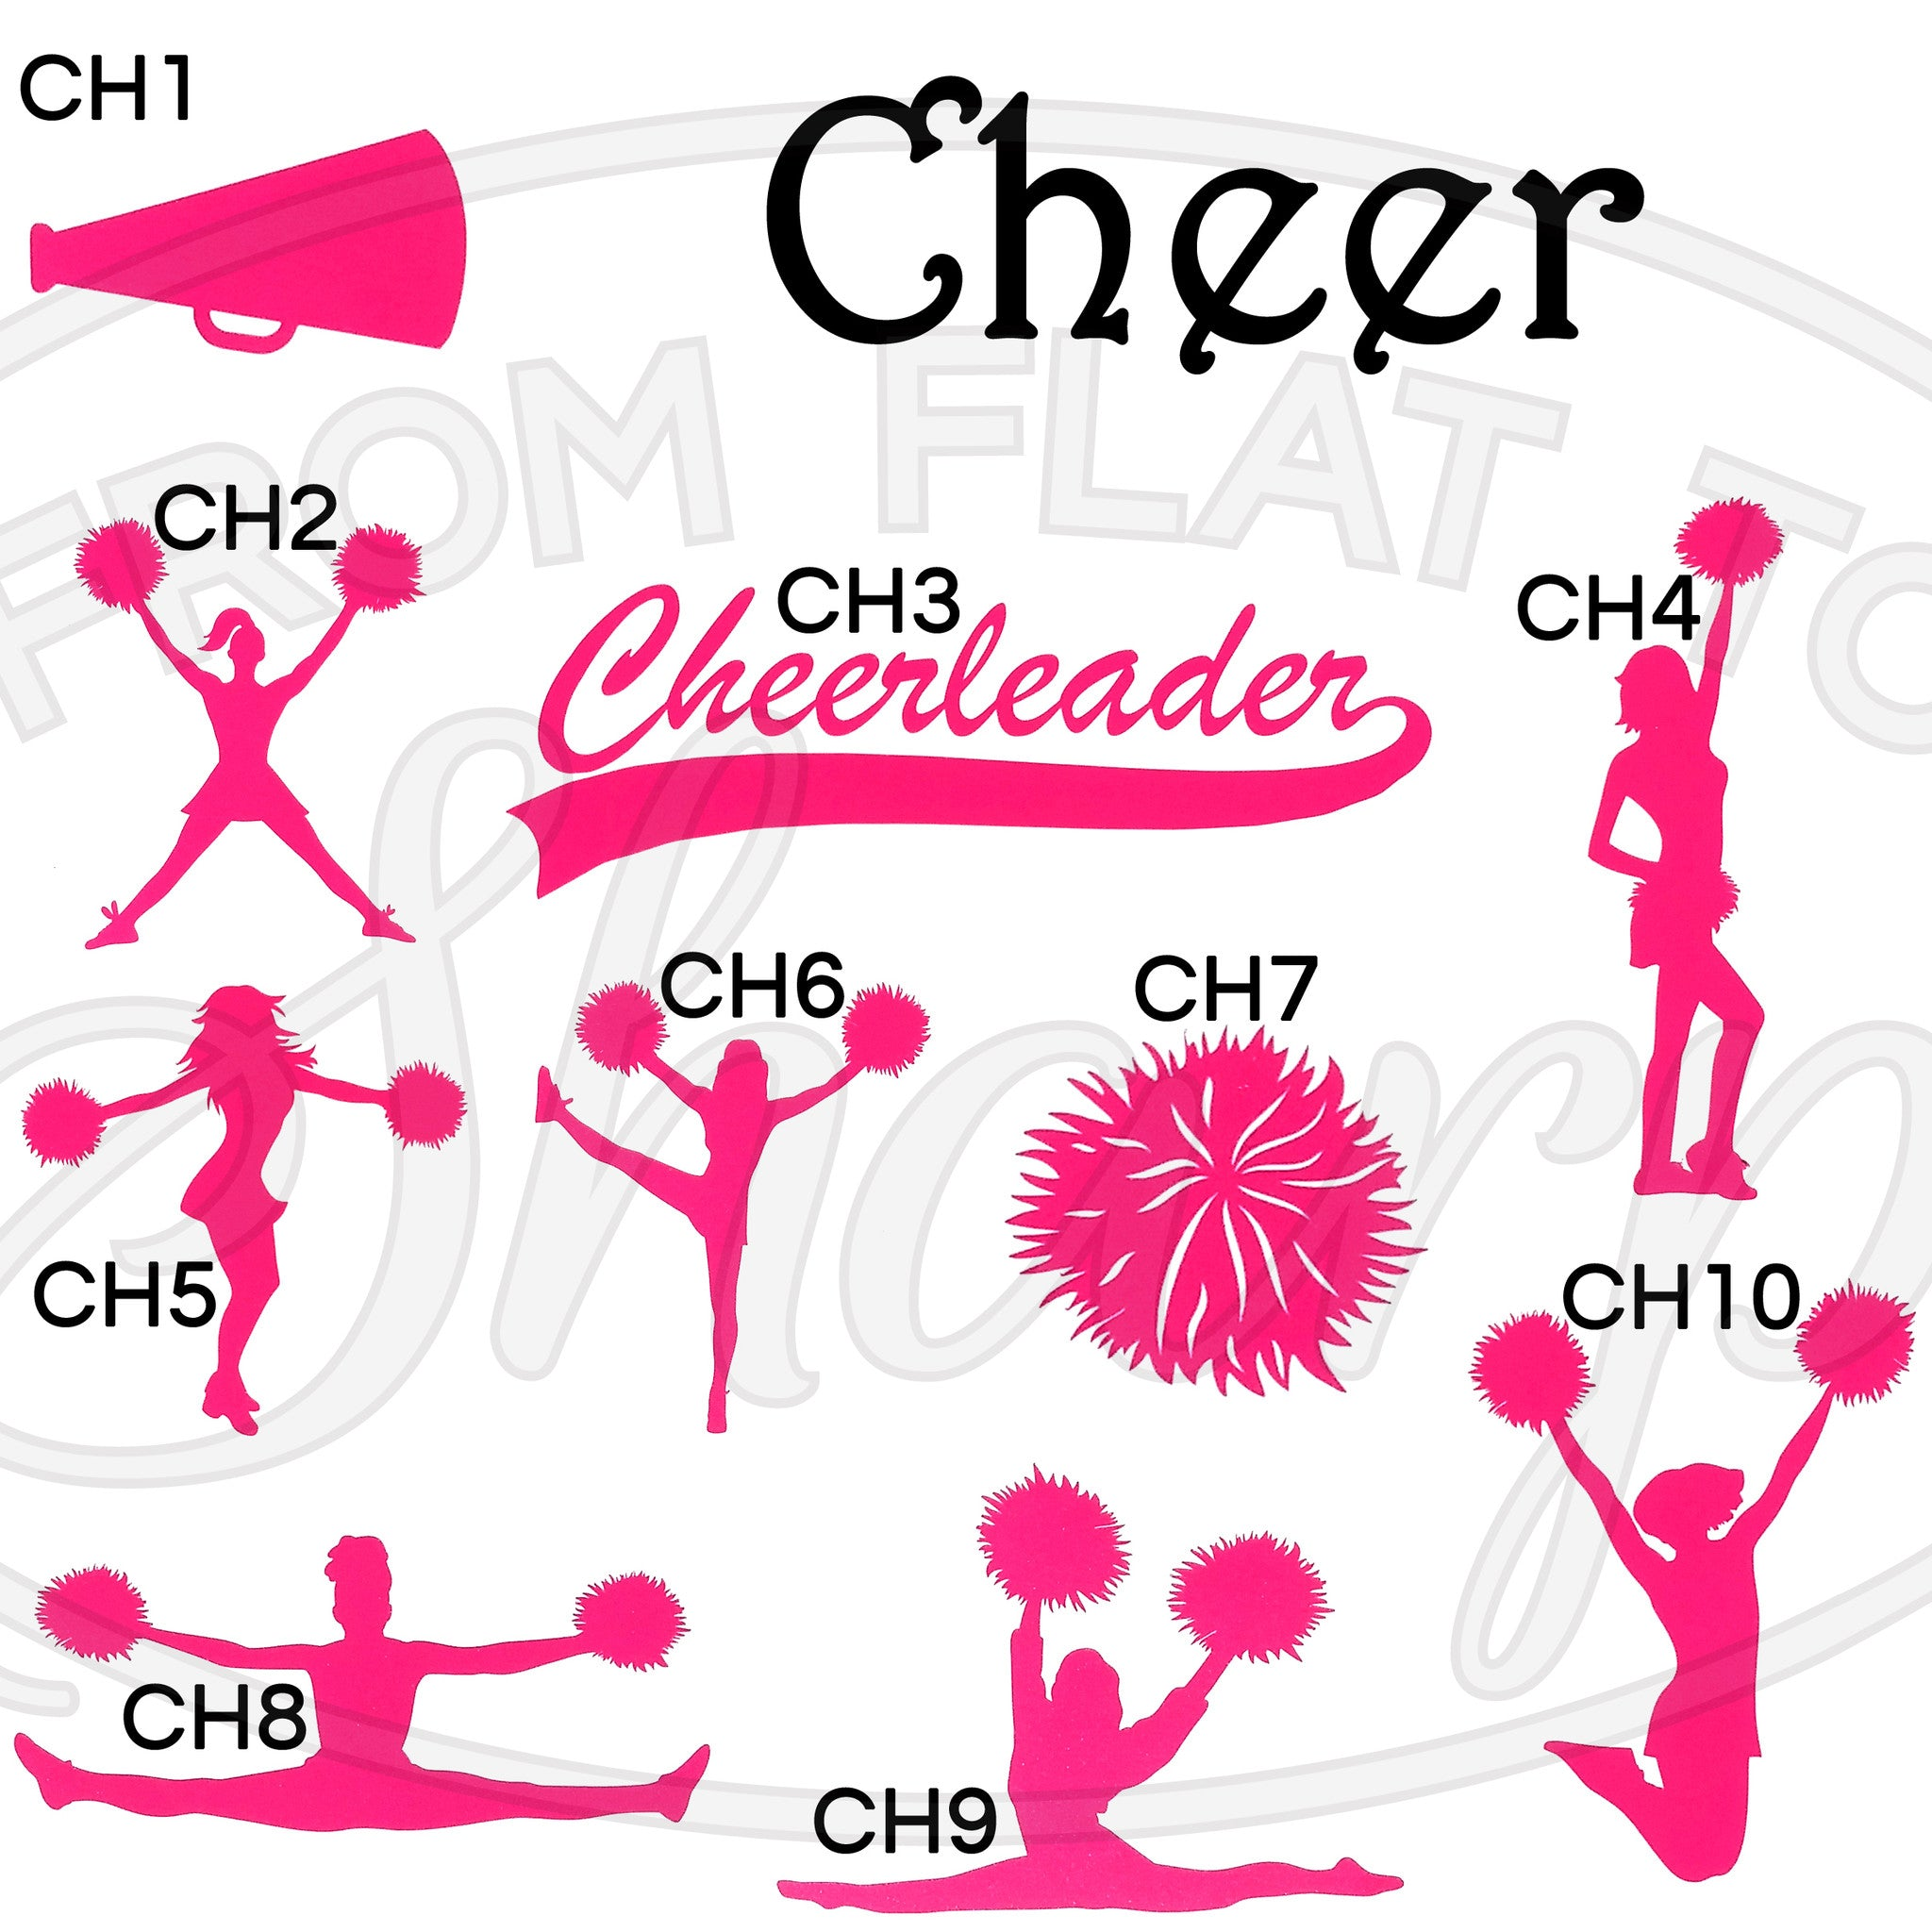 Acrylic tumbler solid color cheer decal